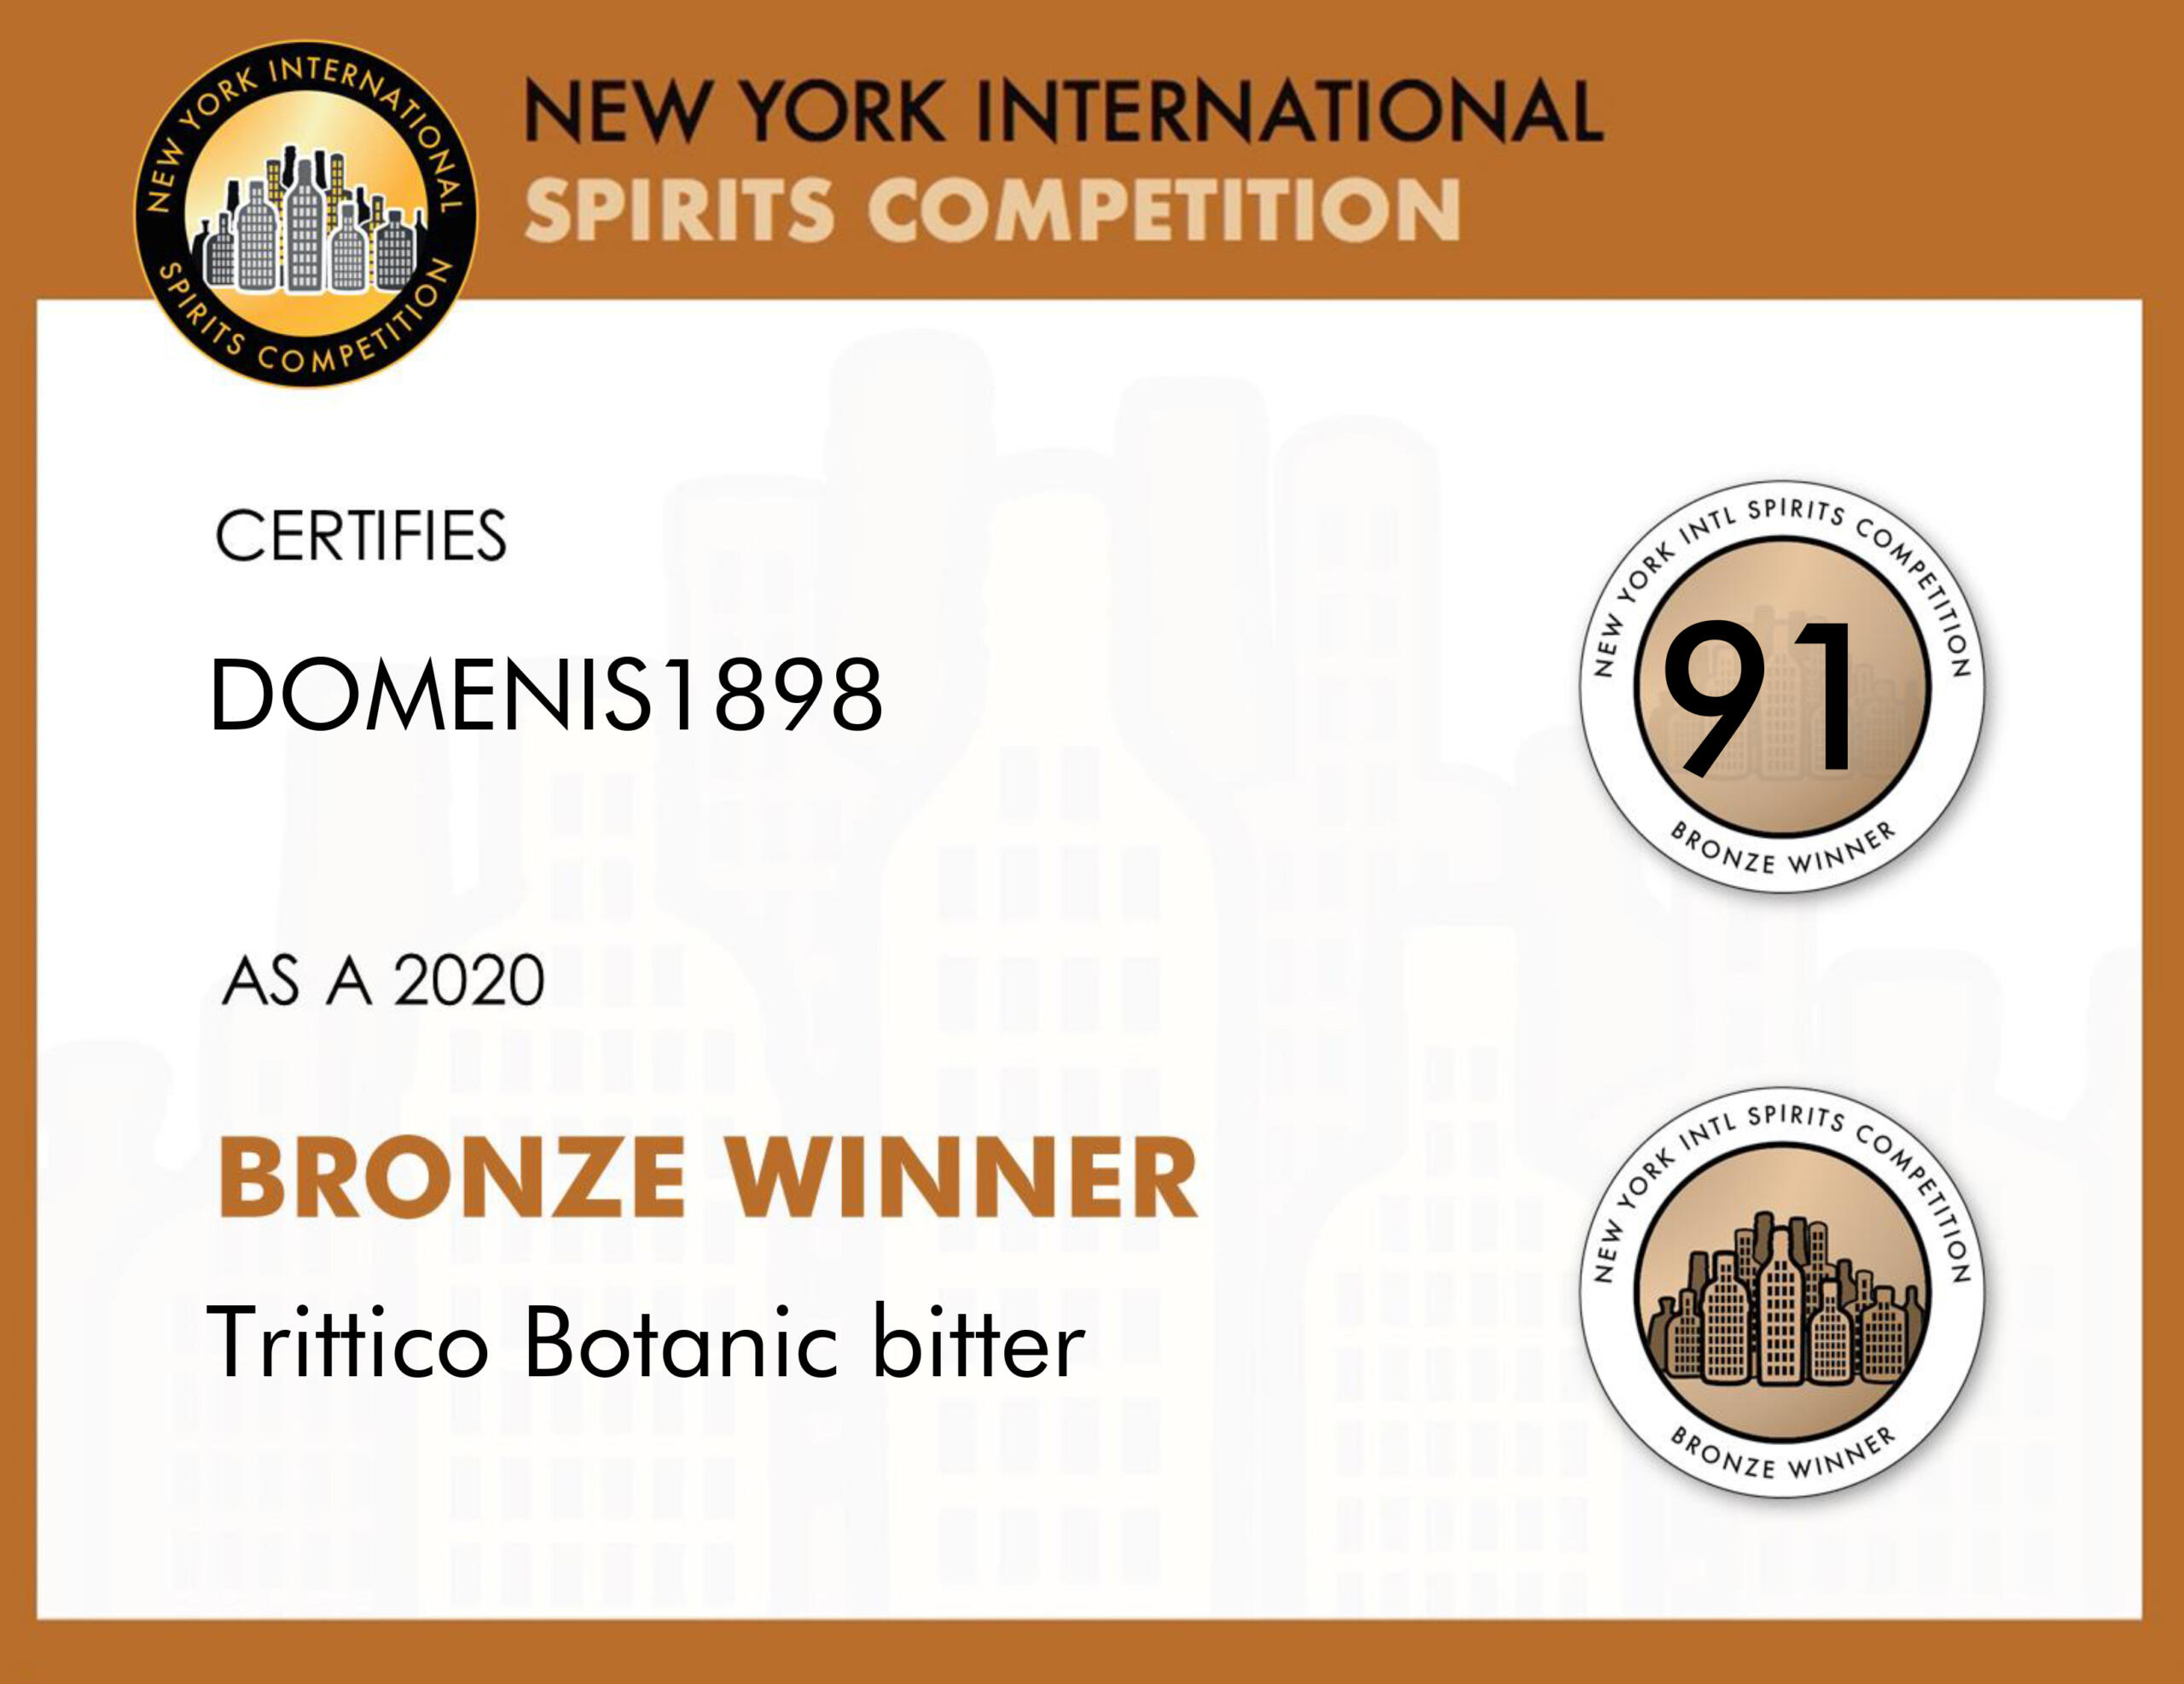 New York Intl Spirits Competition 2020 – Bronze Winner – Trittico Botanic bitter